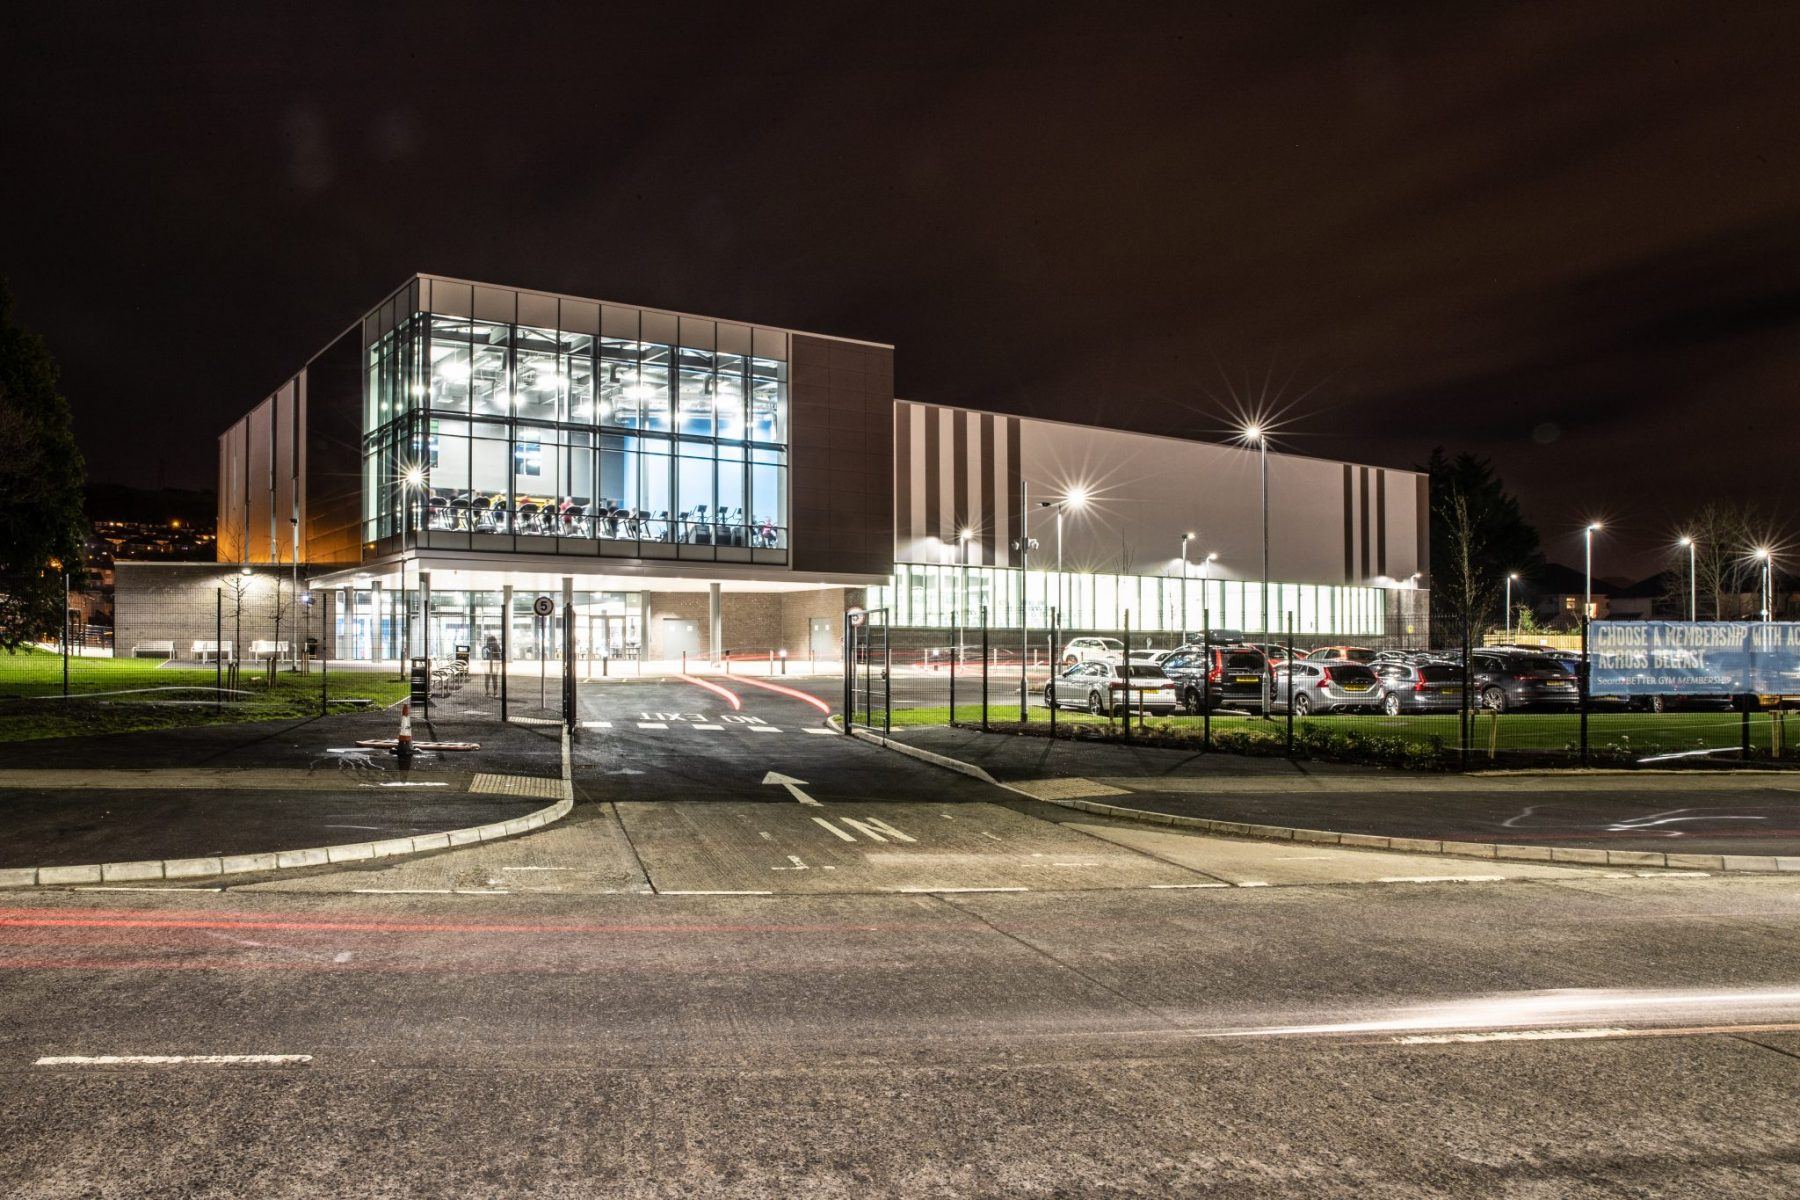 Lisnasharragh Leisure Centre